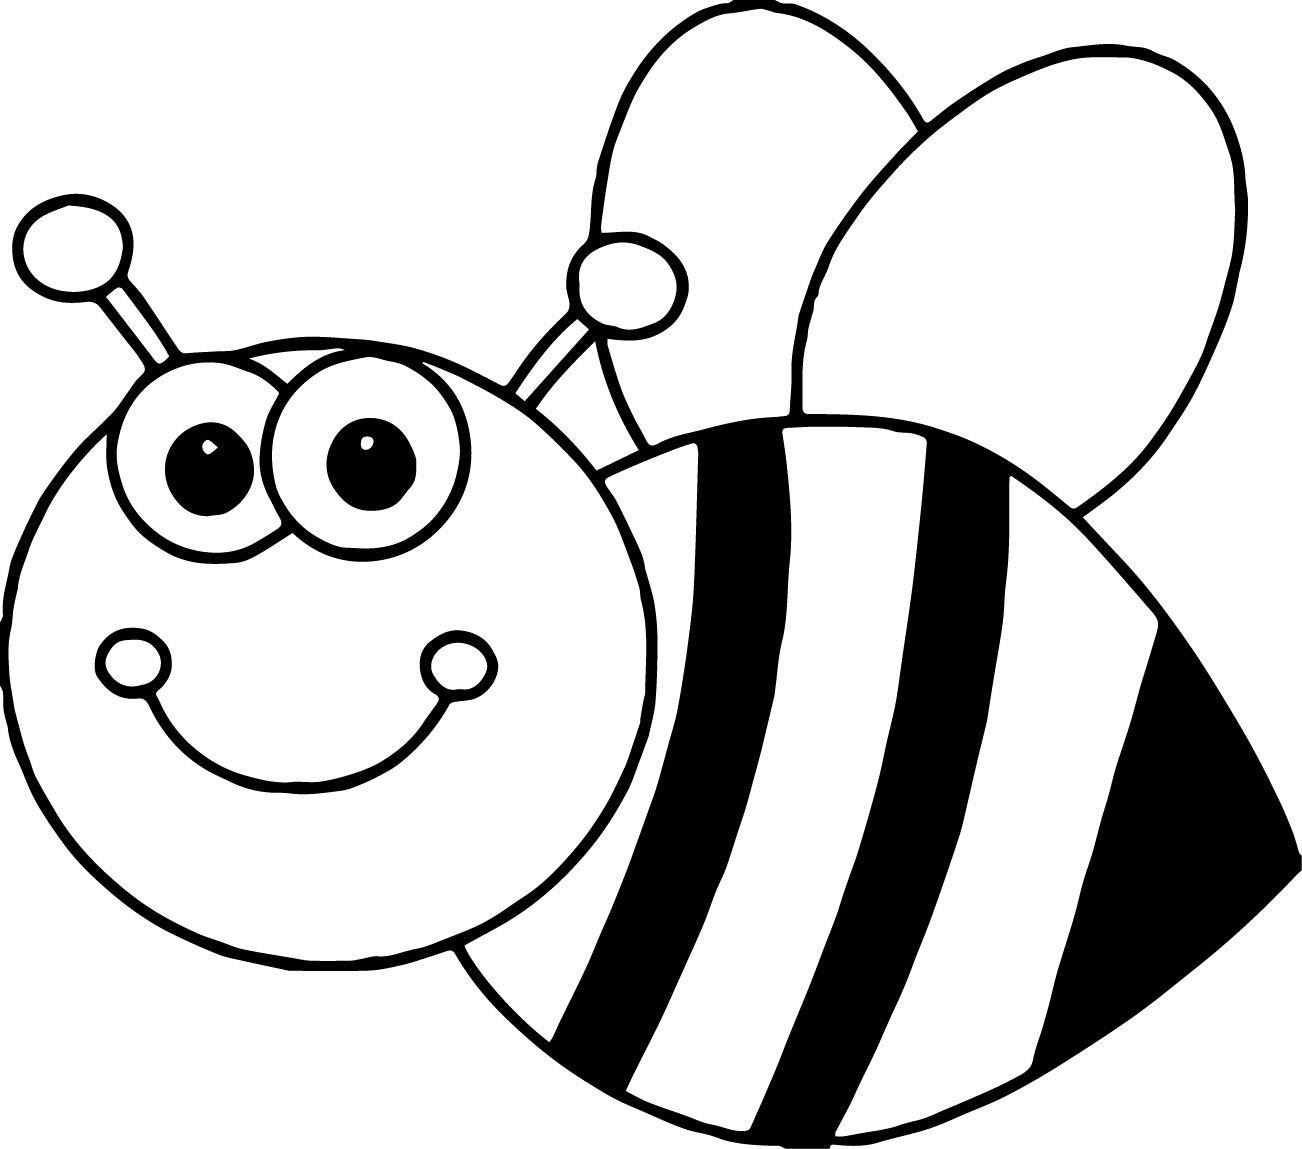 cartoon bumble bee coloring pages cute cartoon bumblebee coloring page free printable pages coloring bumble cartoon bee